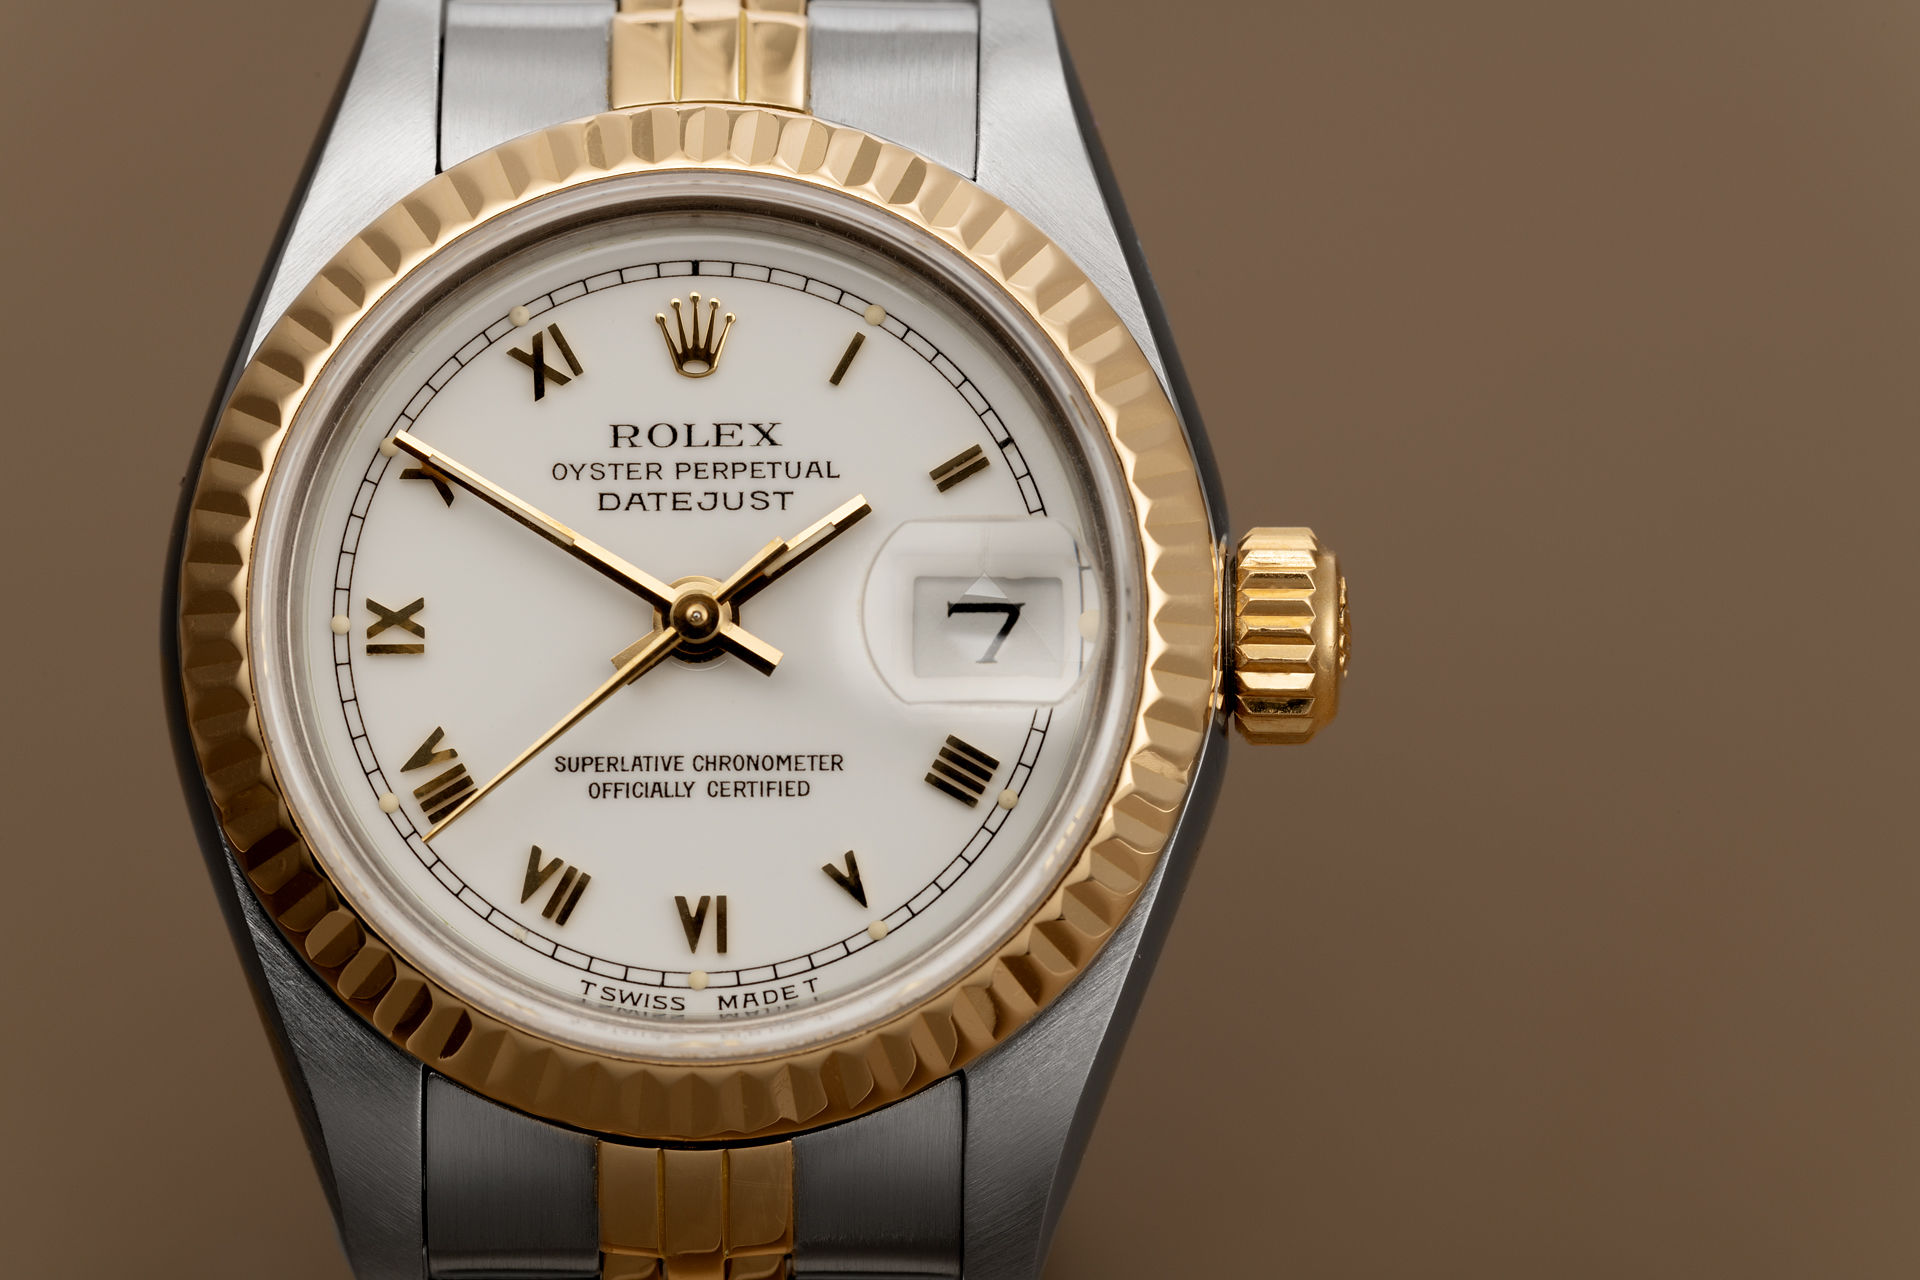 ref 69173 | Lady's Gold & Steel  | Rolex Datejust